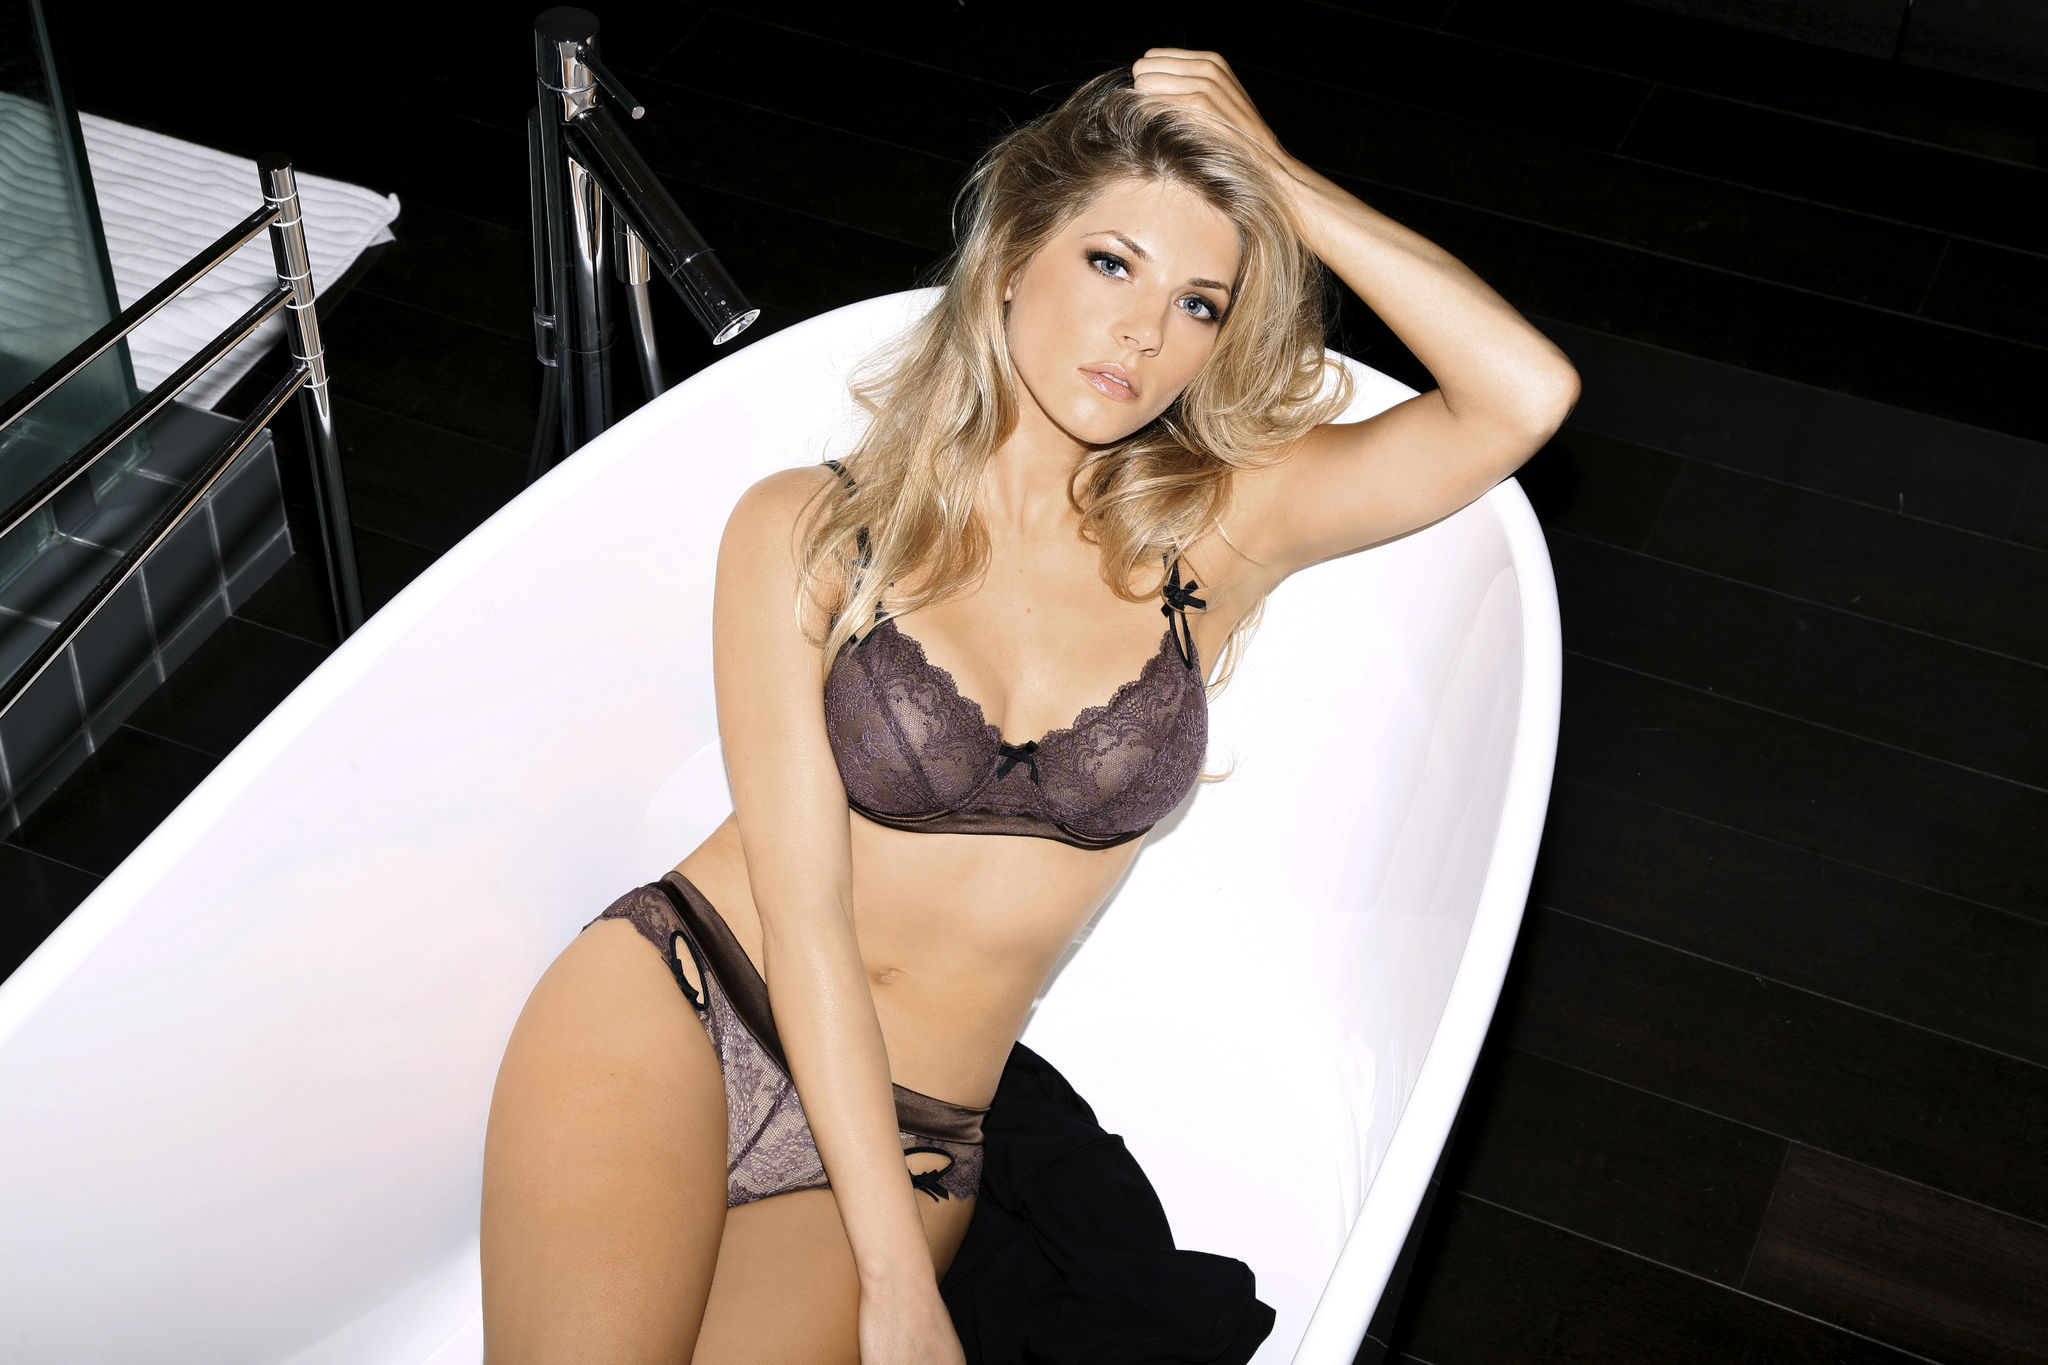 Fappening Katheryn Winnick nudes (72 foto and video), Topless, Cleavage, Twitter, cameltoe 2015